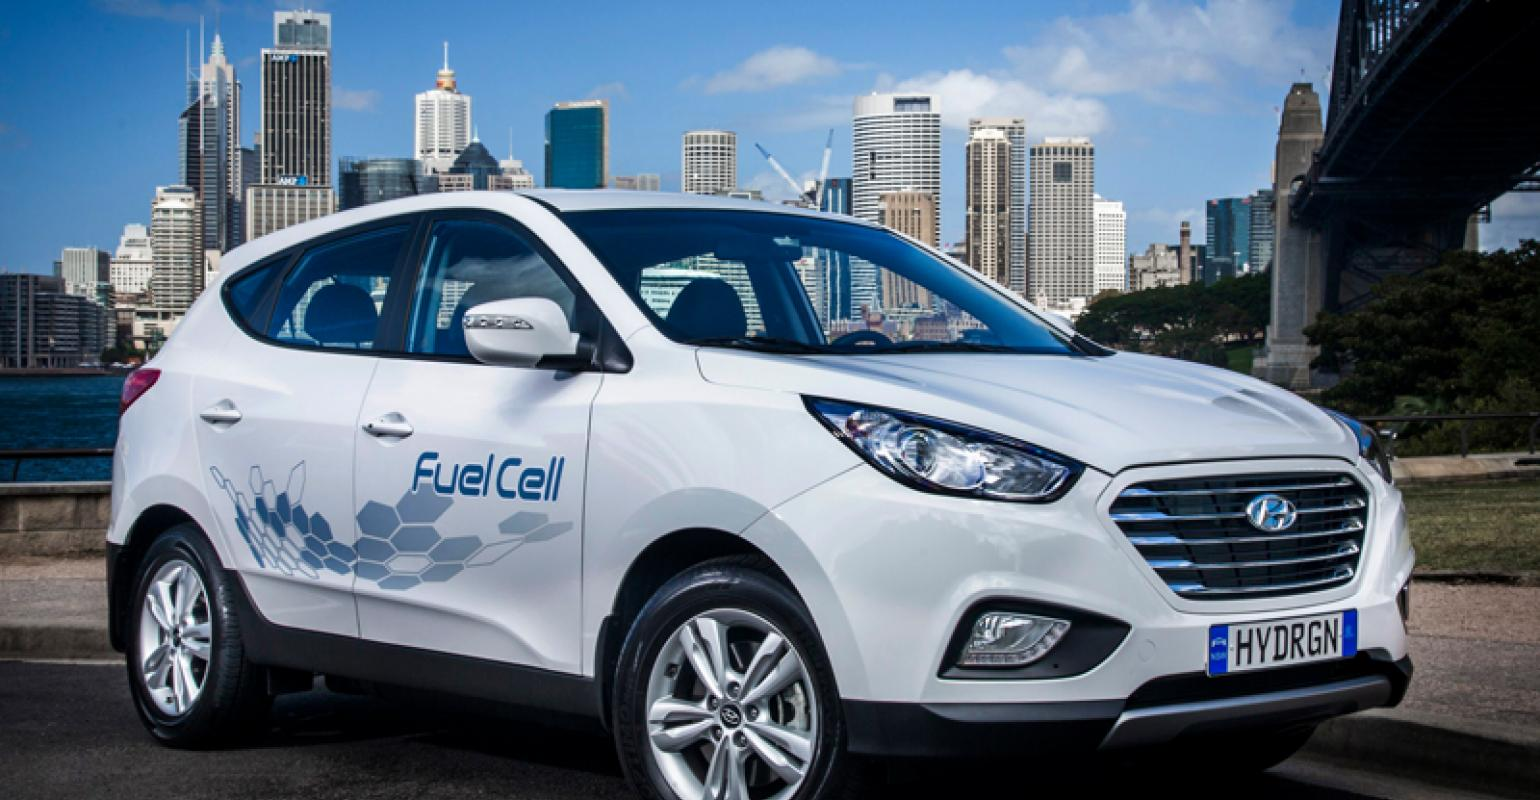 Fuelcell Cars Launching In 2018 Will Replace Massproduced Ix35 FCEV. Fuel  Cell ...